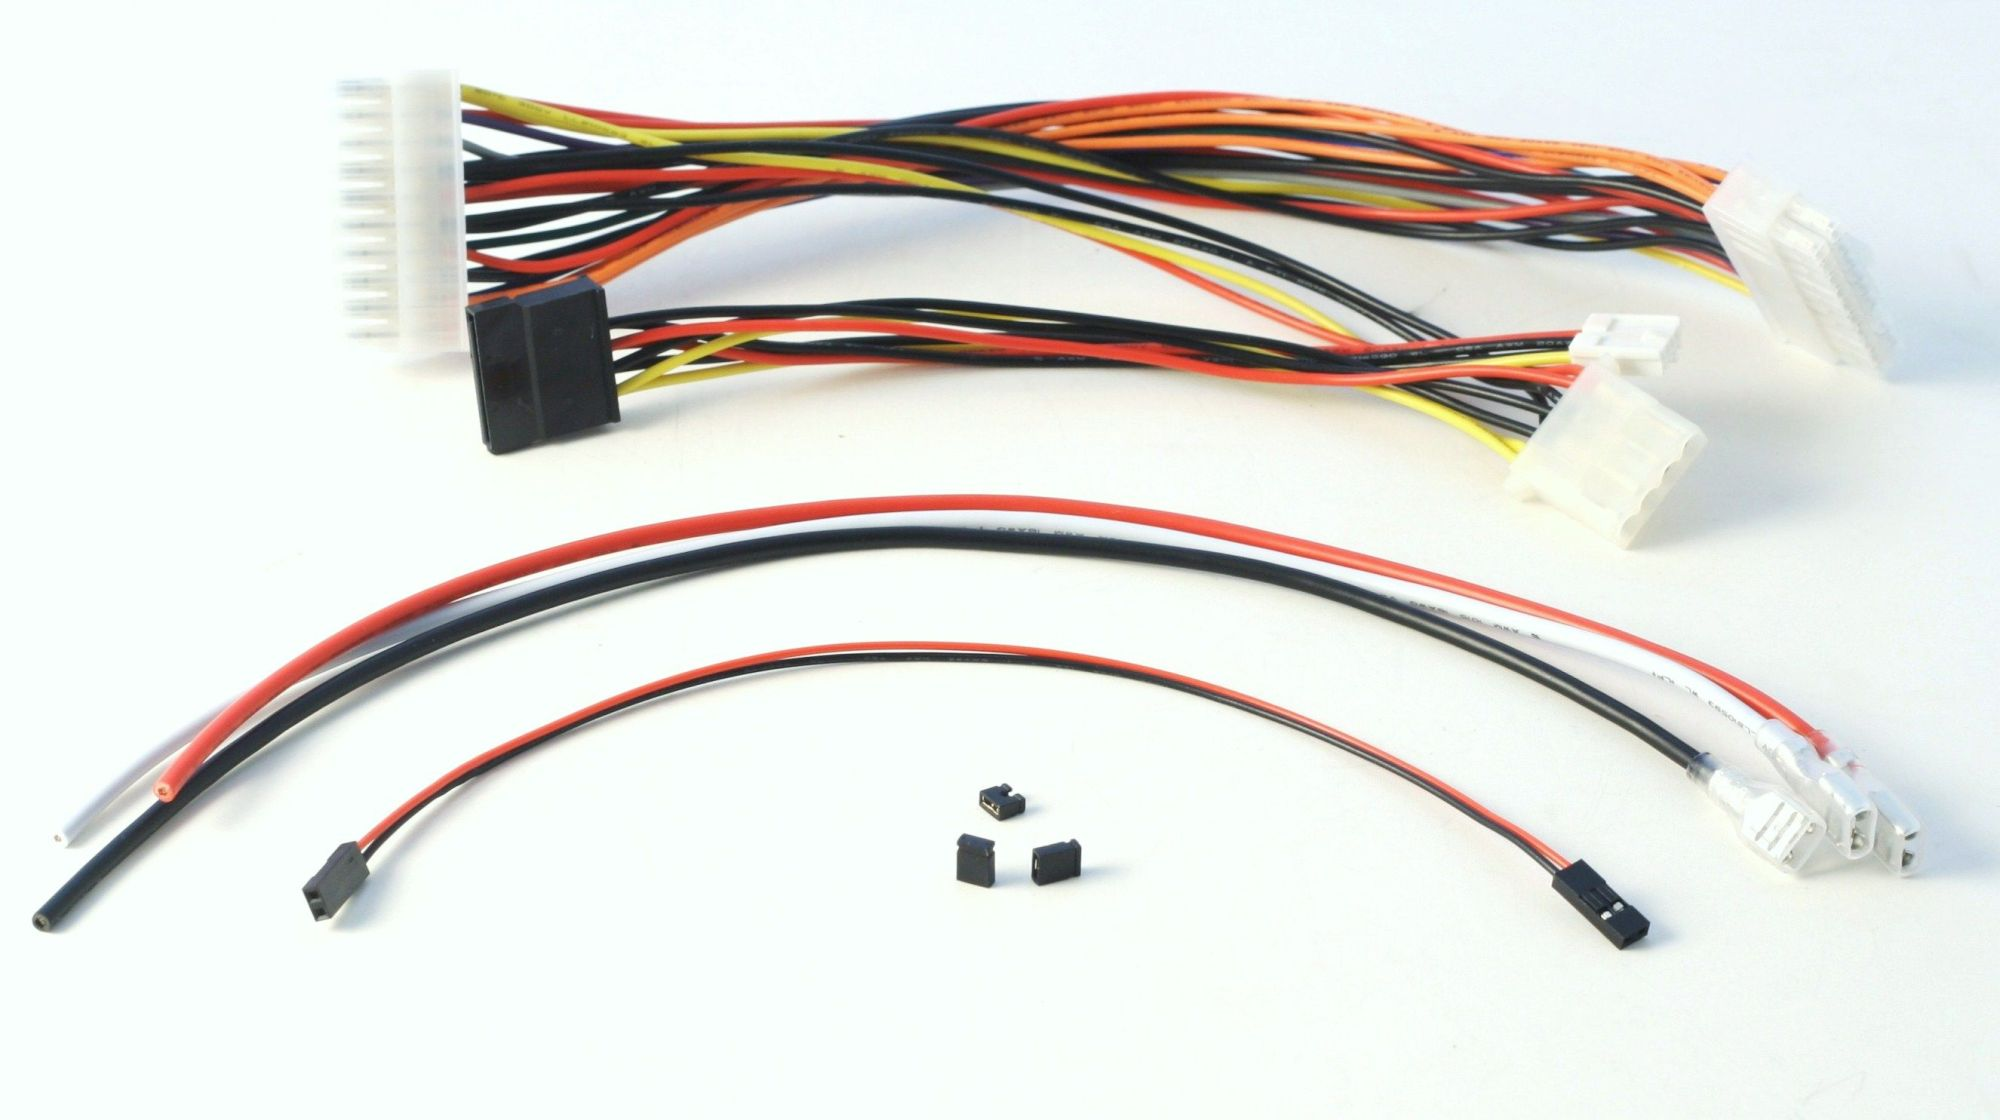 hight resolution of the m2 atx comes with complete cable harness